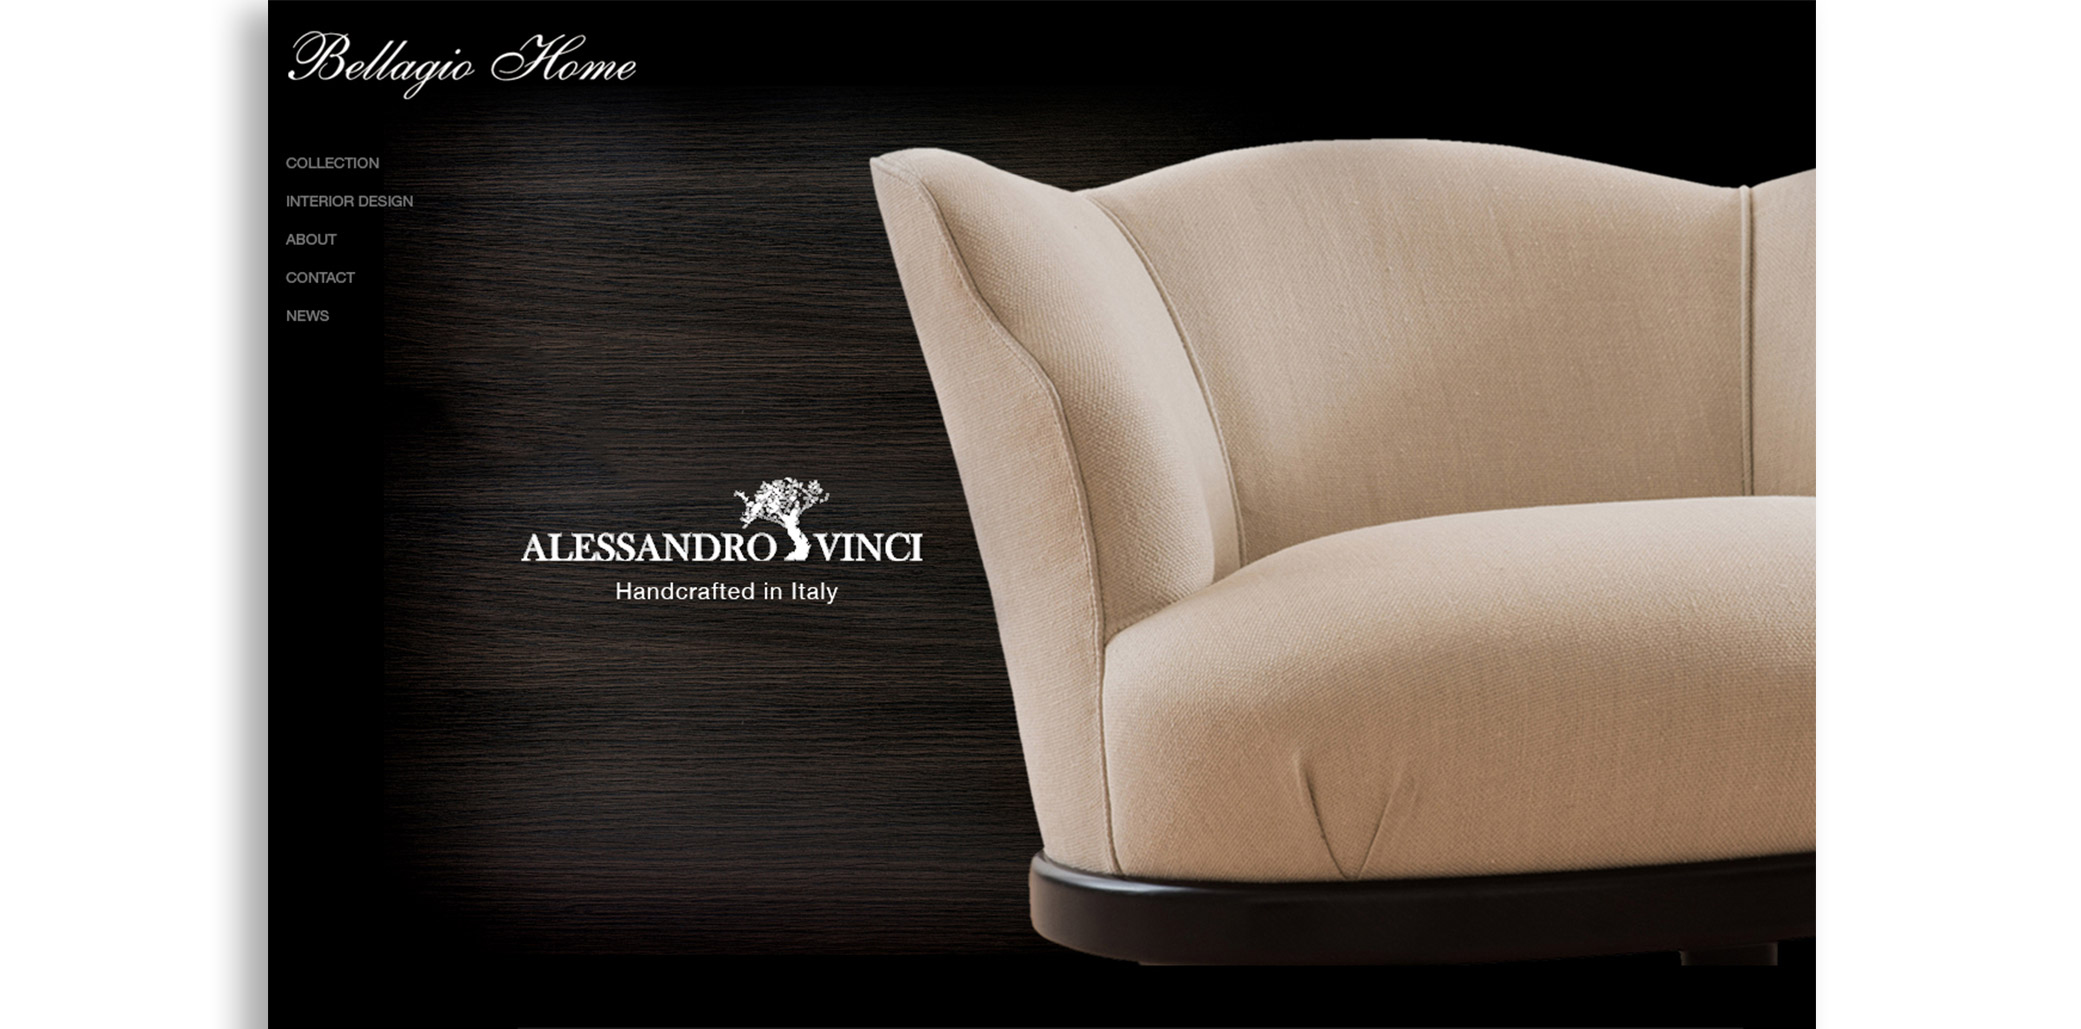 Bellagio Home website design featured slider with furniture on the right side